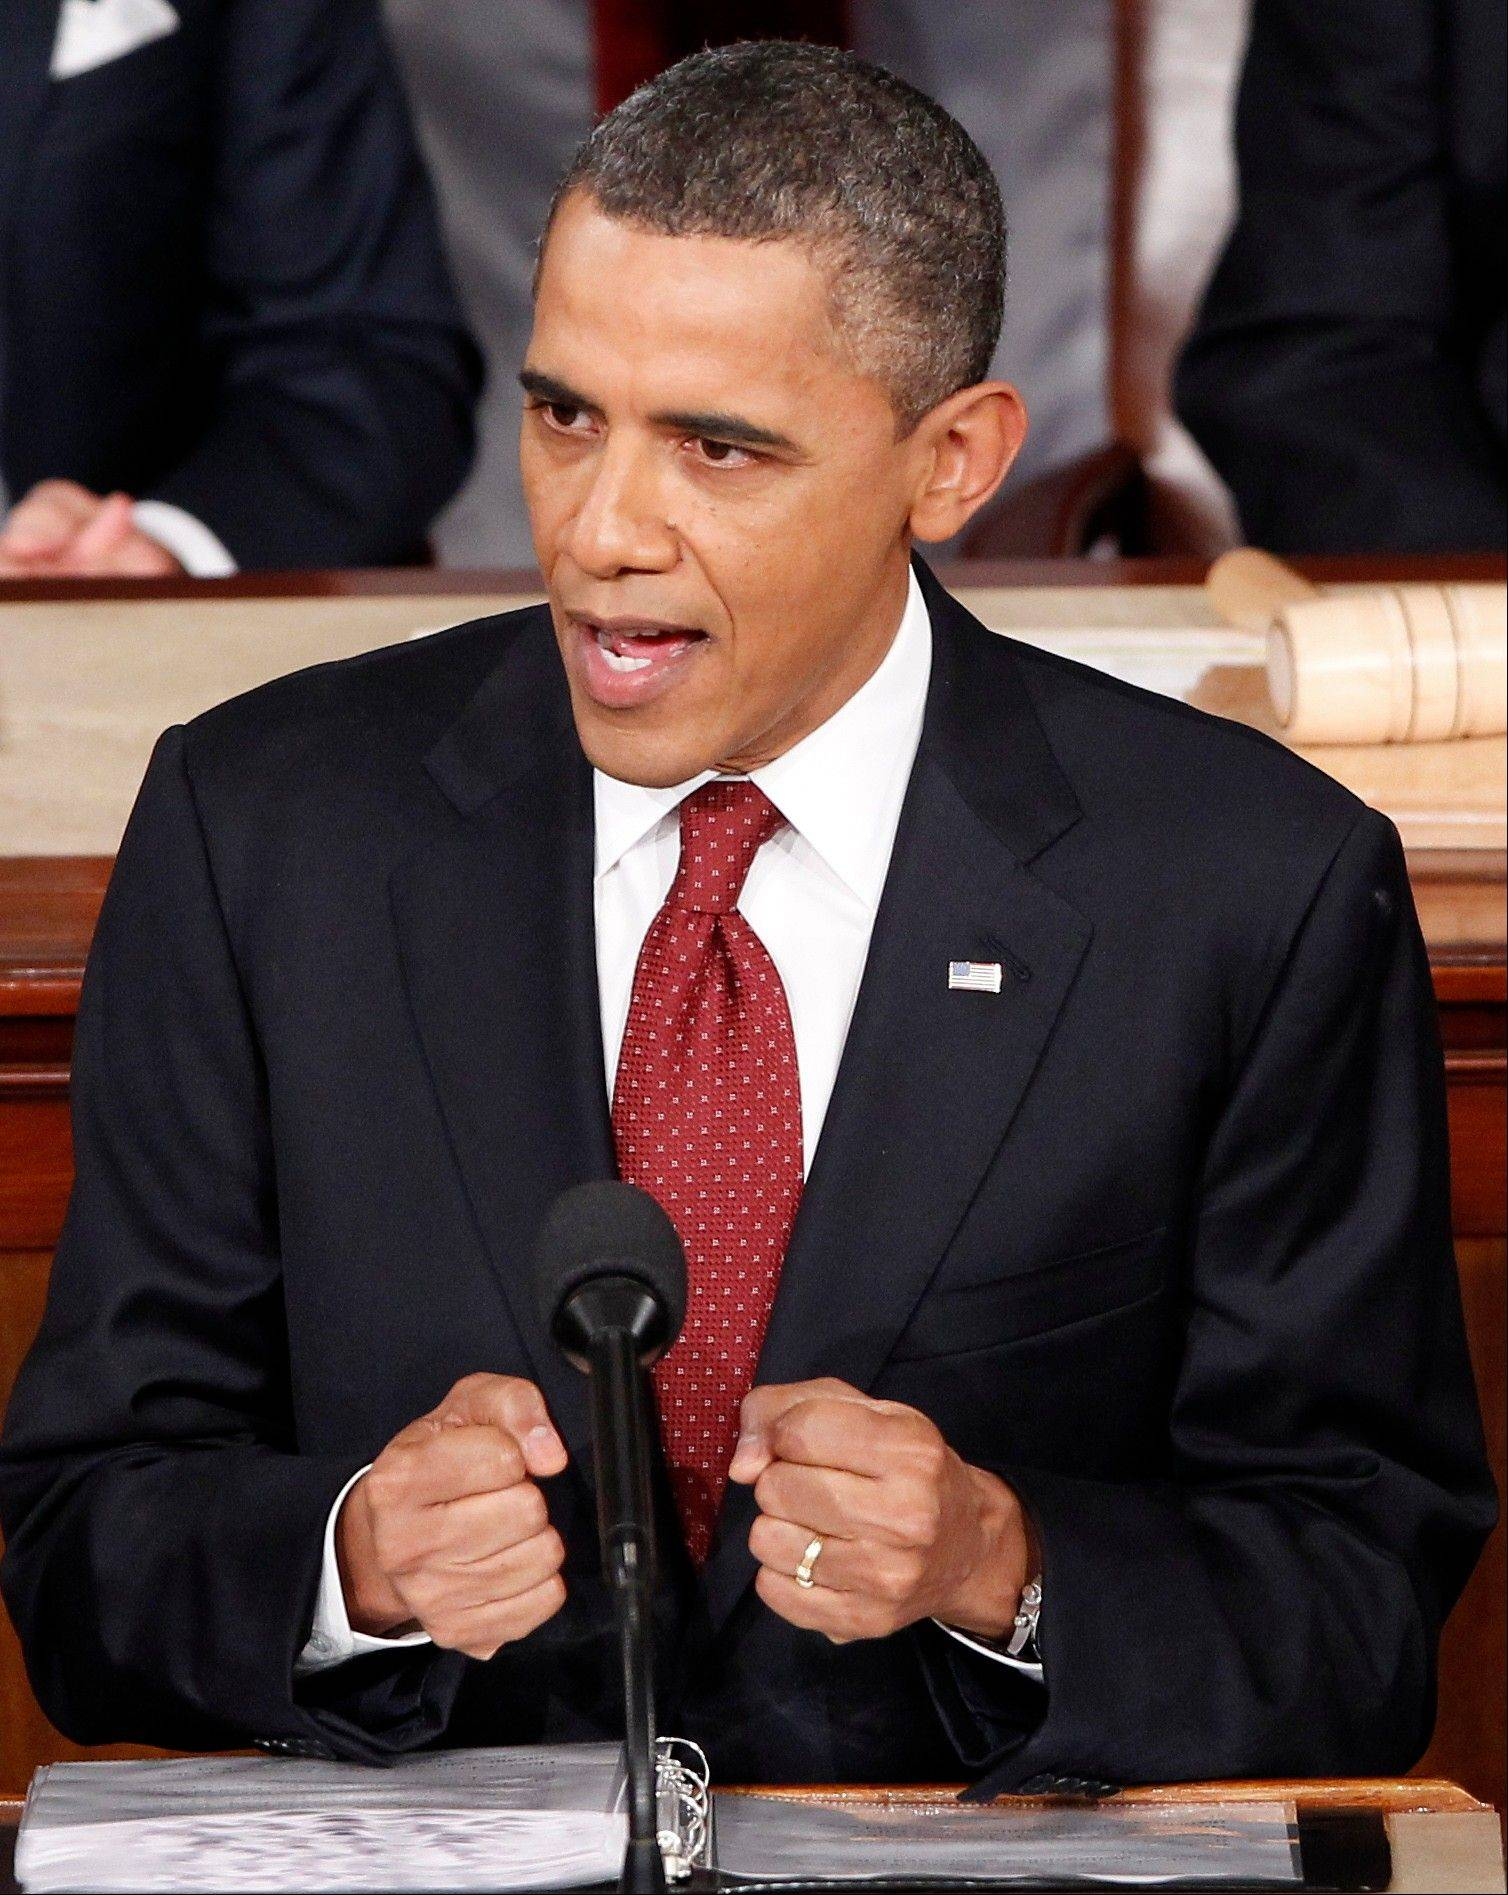 President Barack Obama delivers his State of the Union address on Capitol Hill Jan. 24, 2012. He is scheduled to deliver this year's address Tuesday.